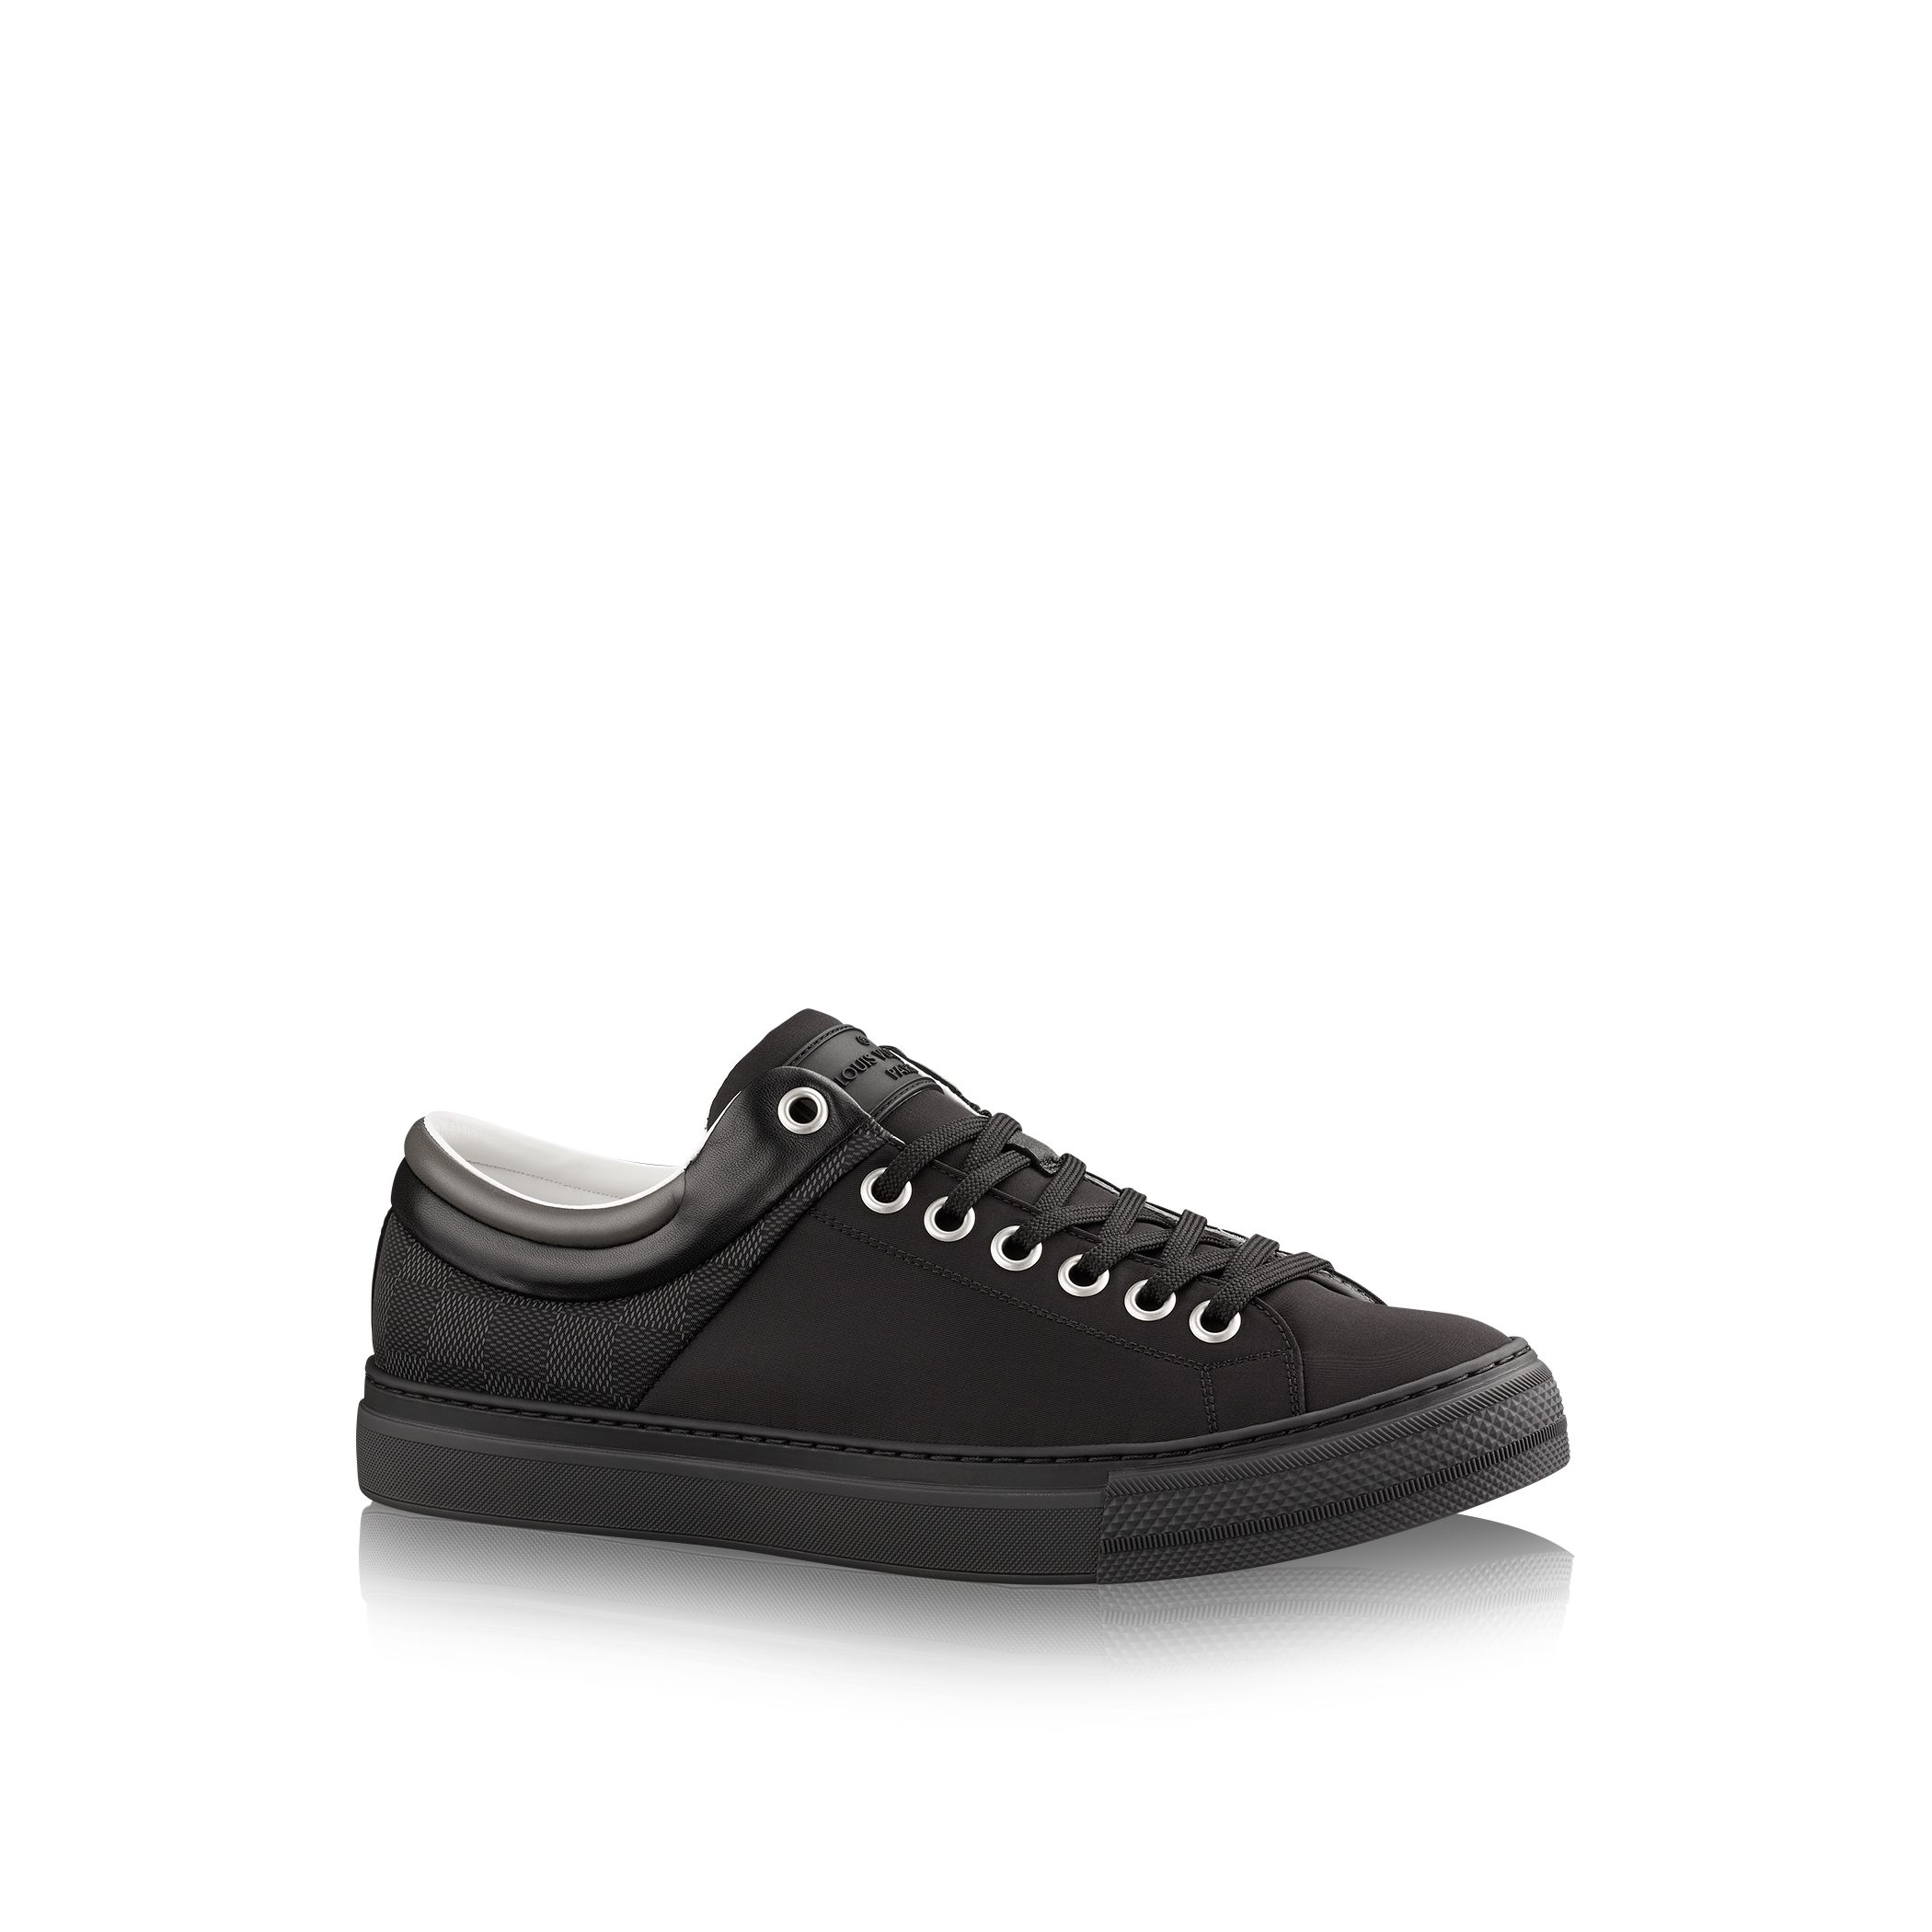 8f37891f9eb Louis Vuitton Sneakers Black